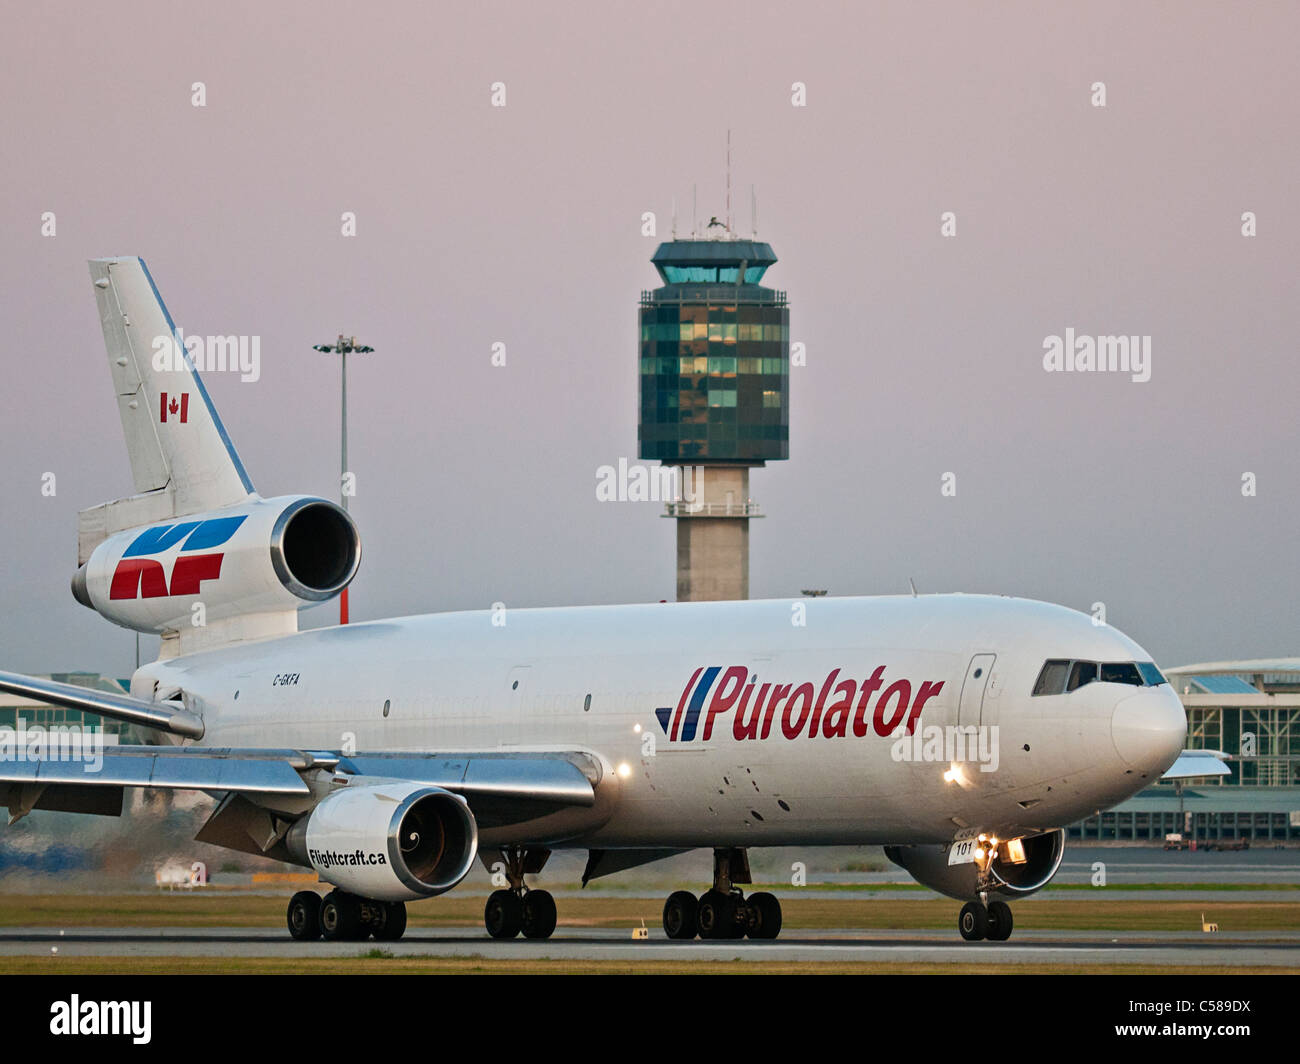 An air cargo DC10-30F jet in Purolator Courier livery is seen as it lands at Vancouver International Airport. - Stock Image